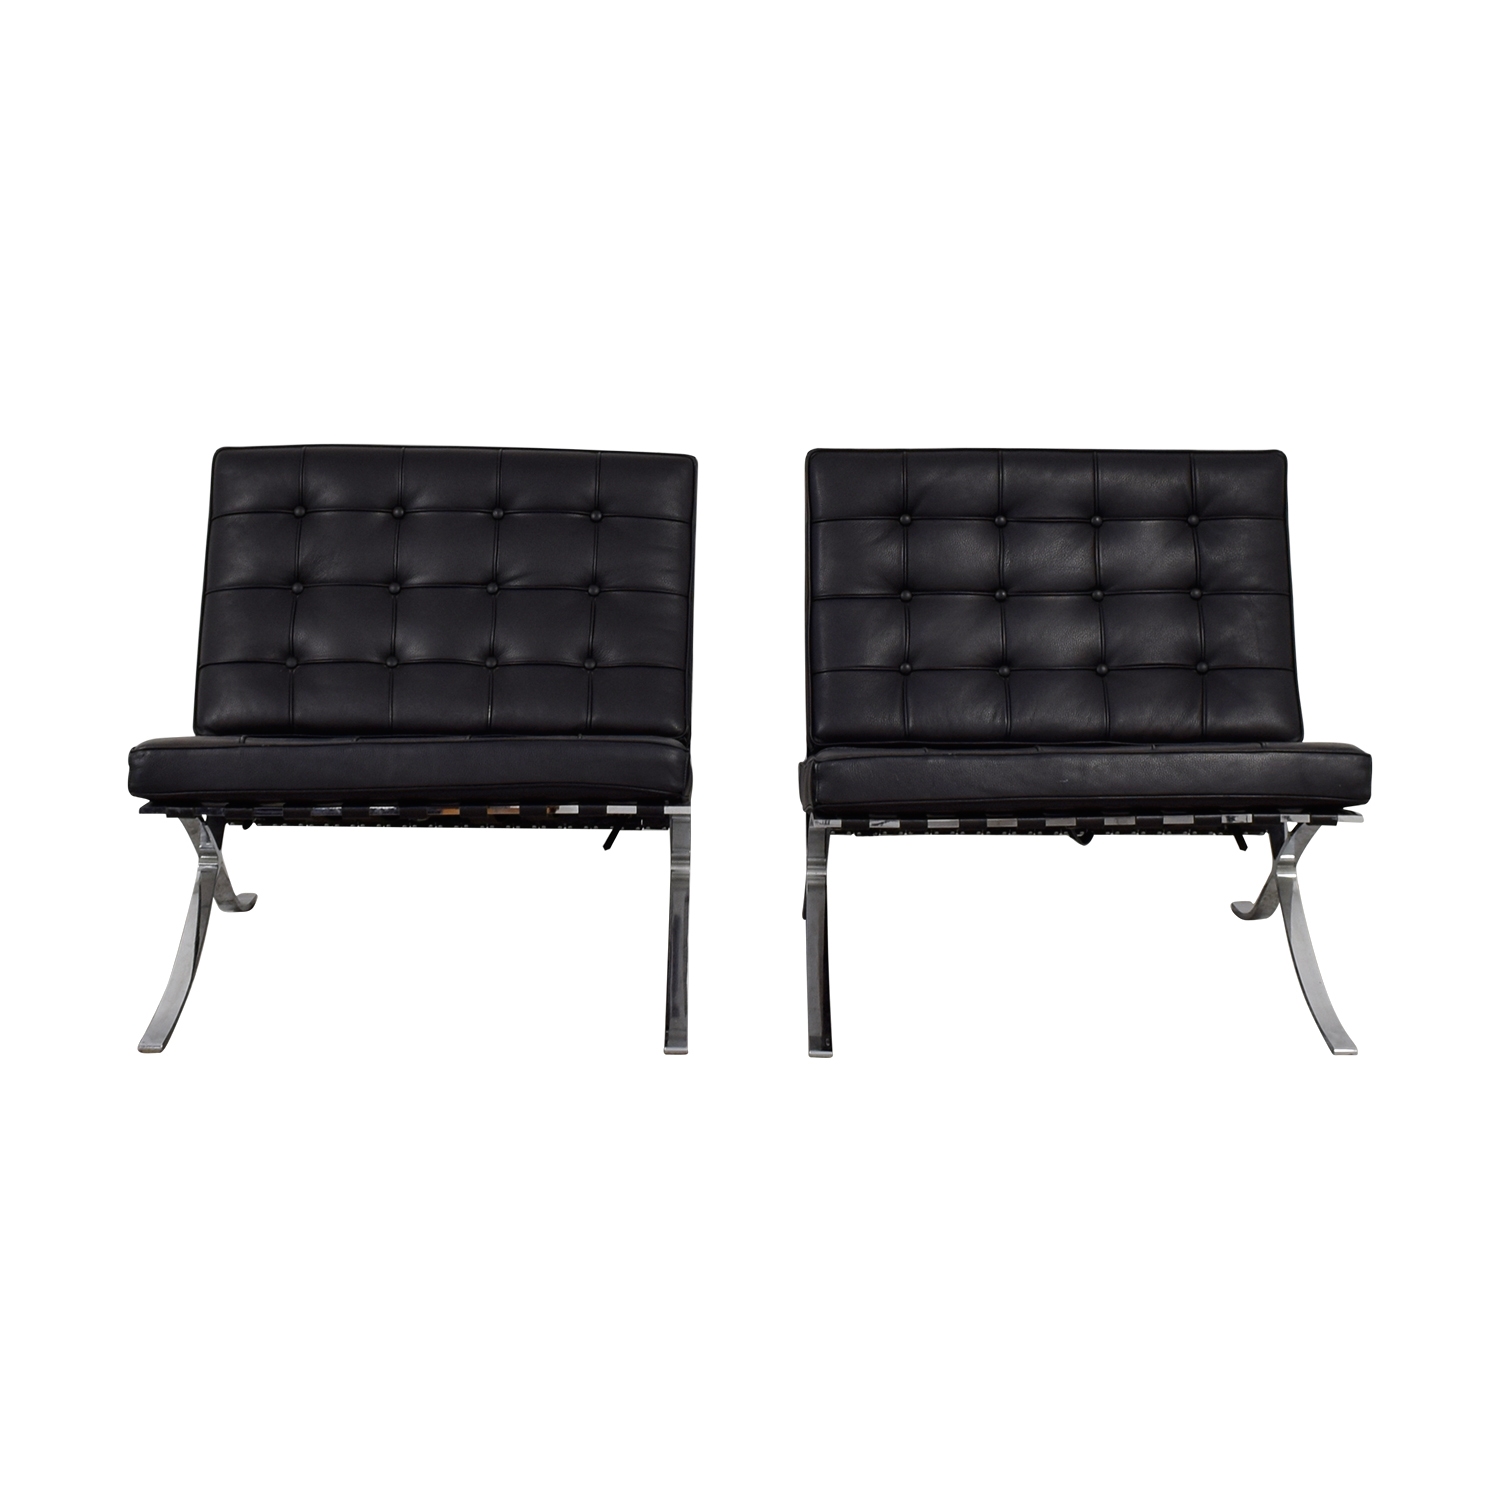 Black and Chrome Tufted Barcelona Style Accent Chairs sale